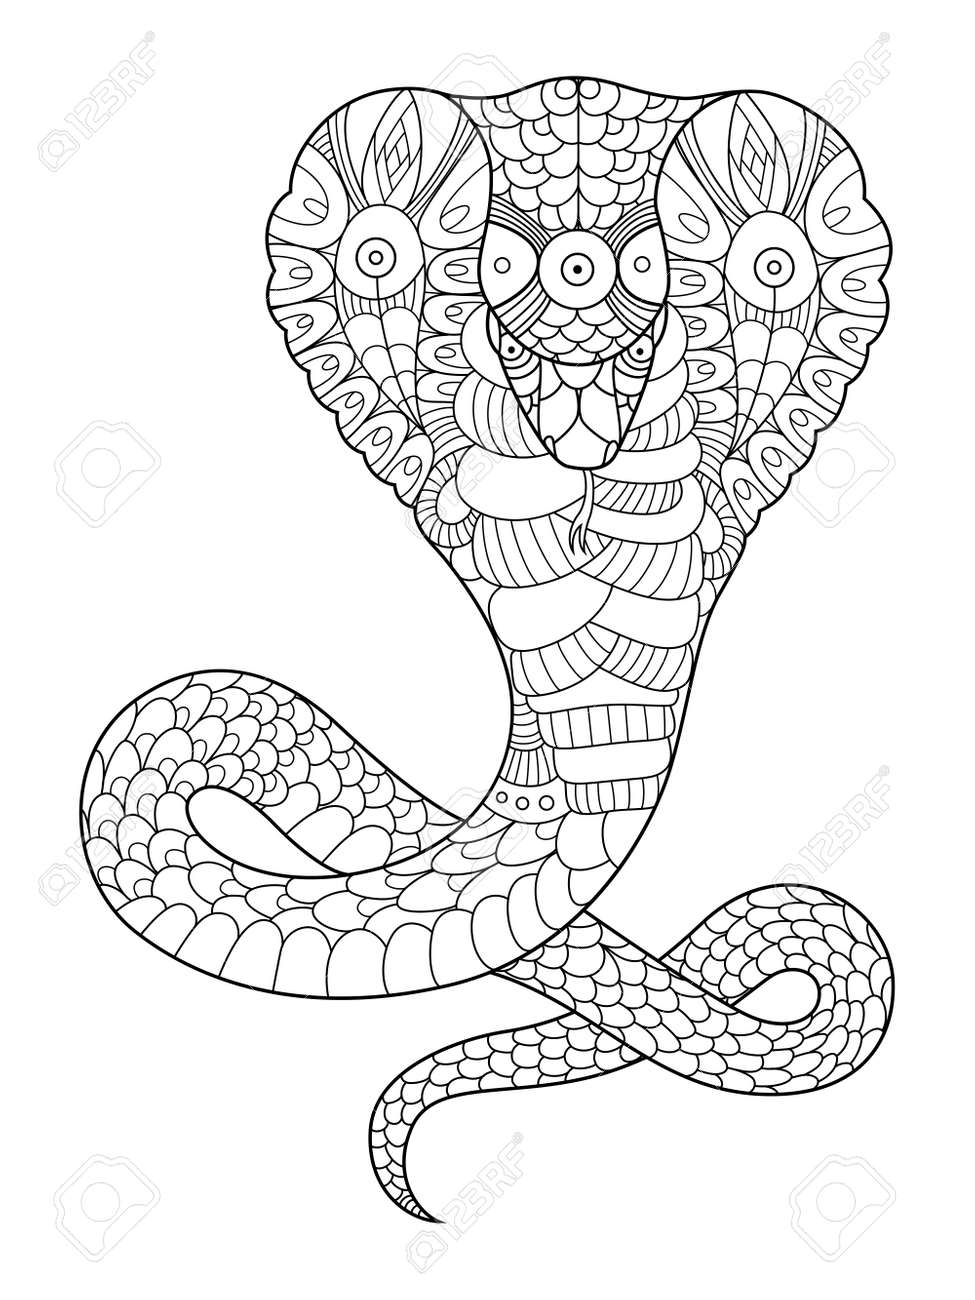 Cobra snake coloring book for adults vector illustration. Anti-stress coloring for adult. Tattoo stencil. Black and white lines. Lace pattern - 68895634